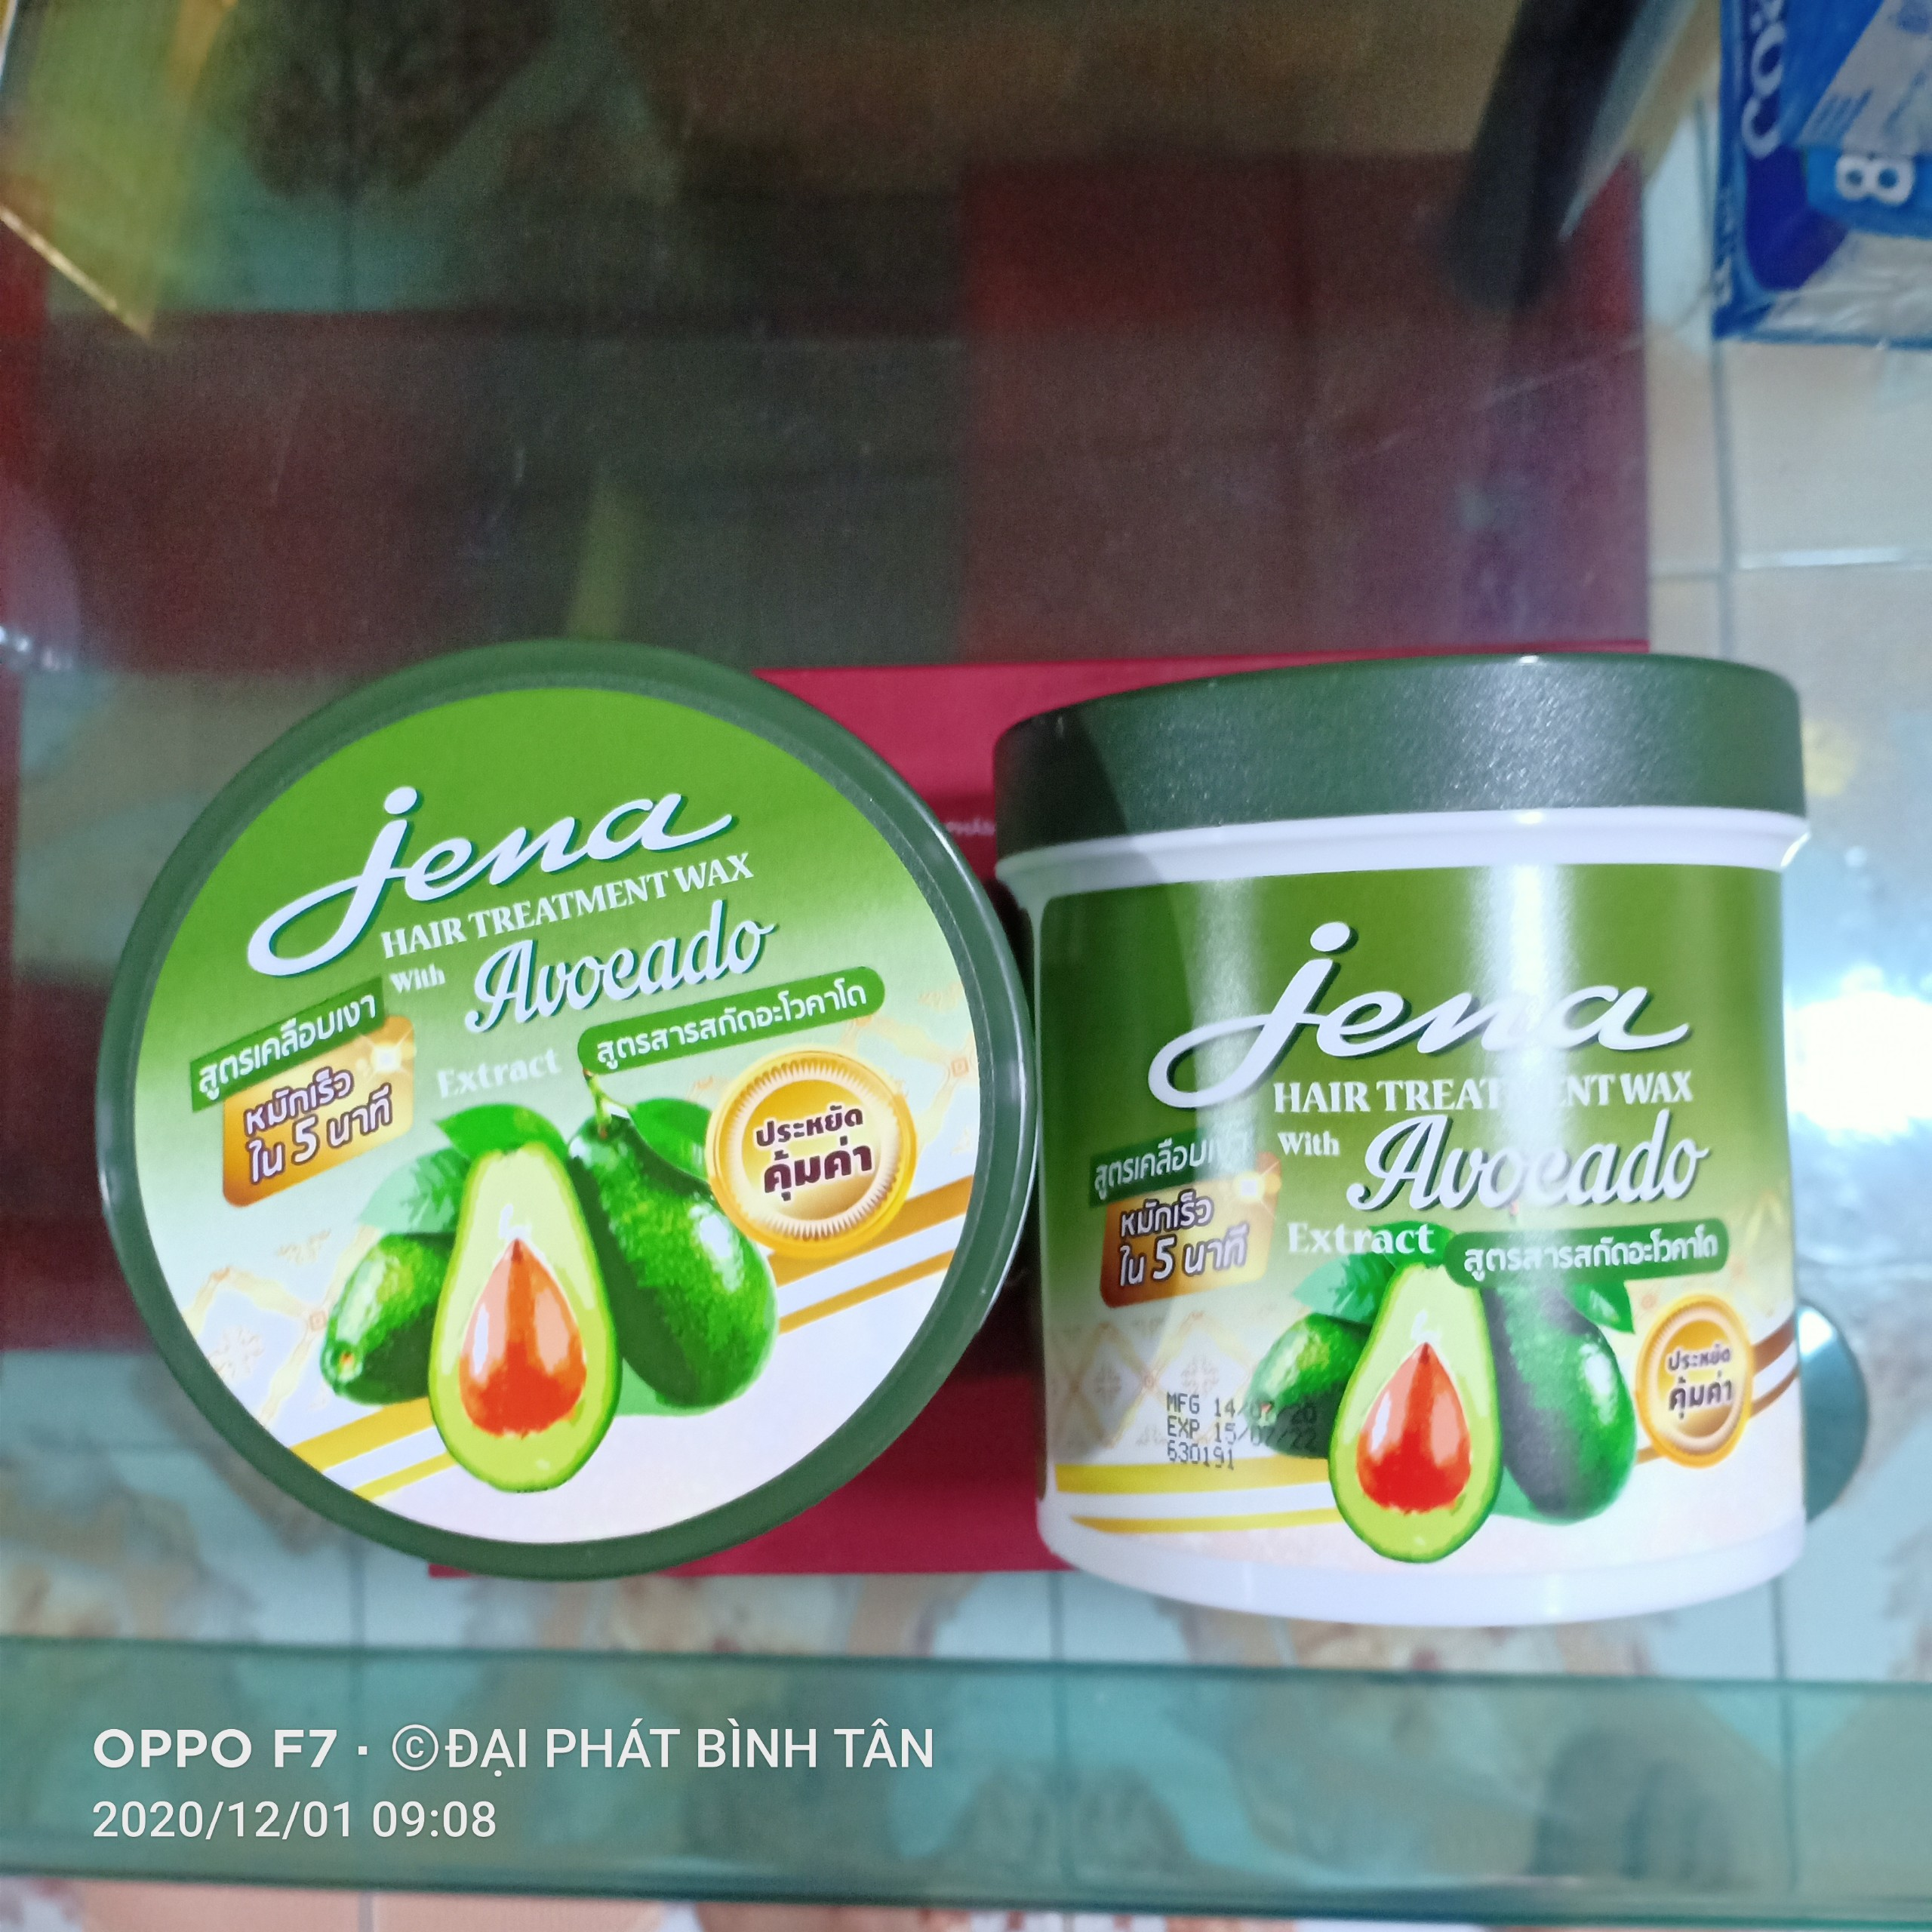 Kem ủ tóc Bơ Jena Hair Treatment Wax Avoeado